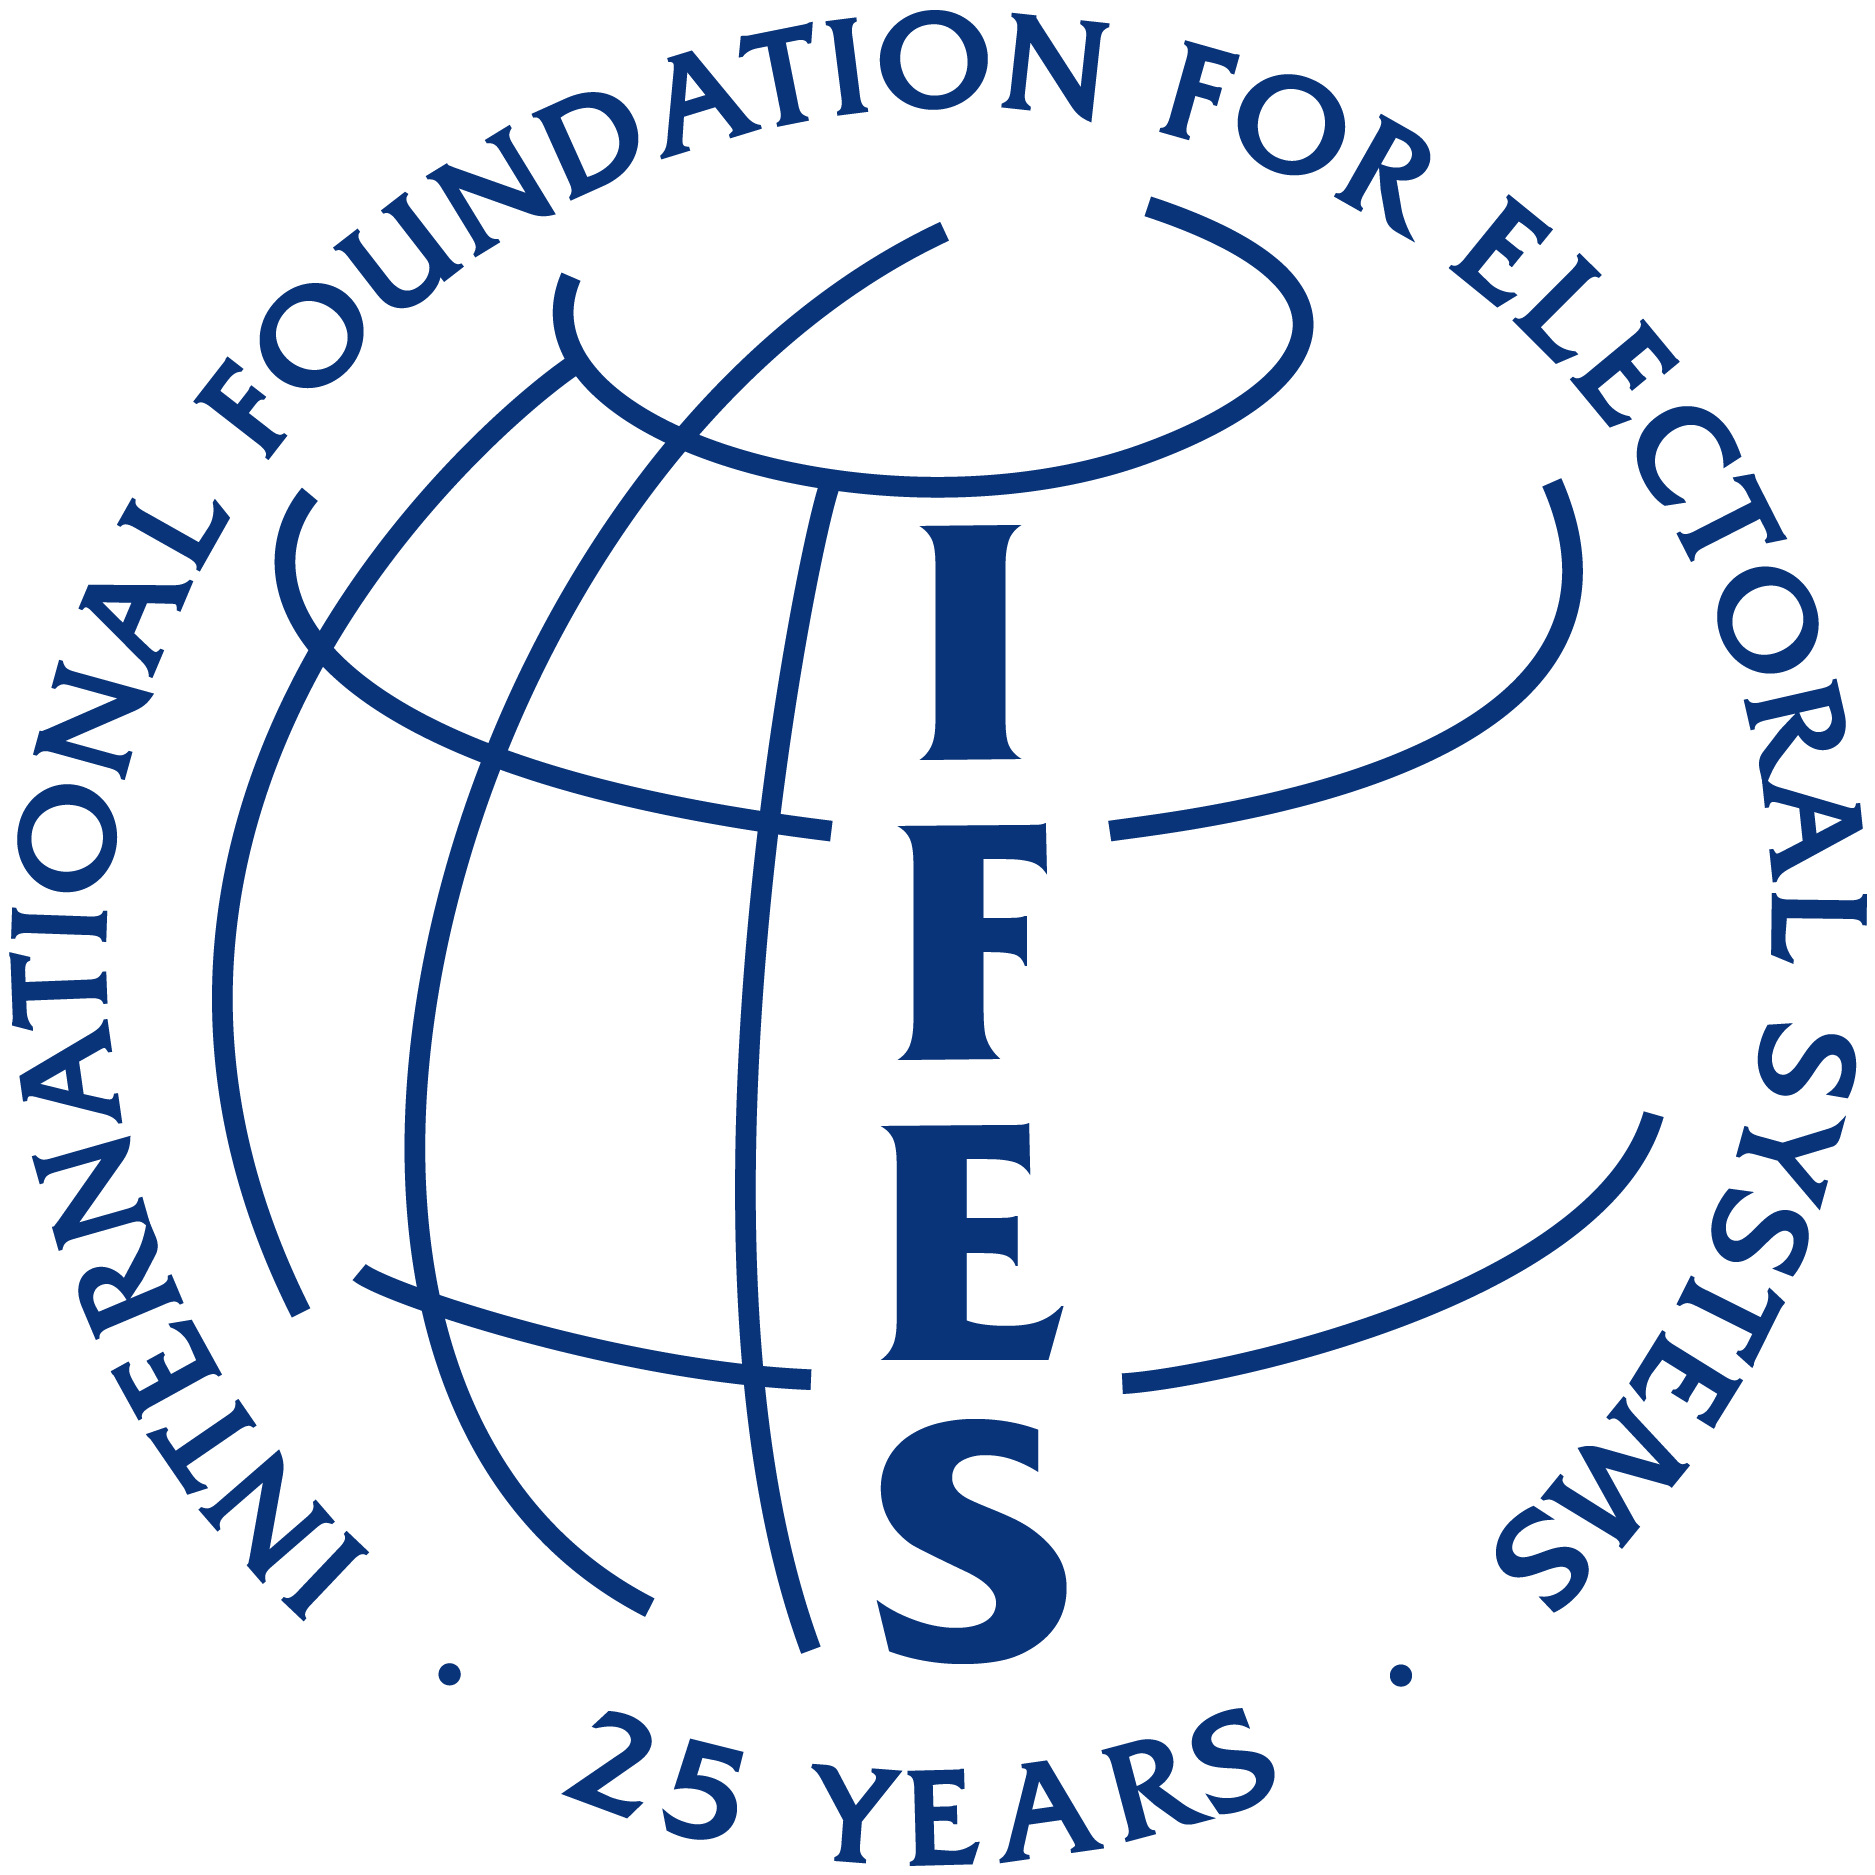 Logo for the International Foundation for Electoral Systems (IFES)